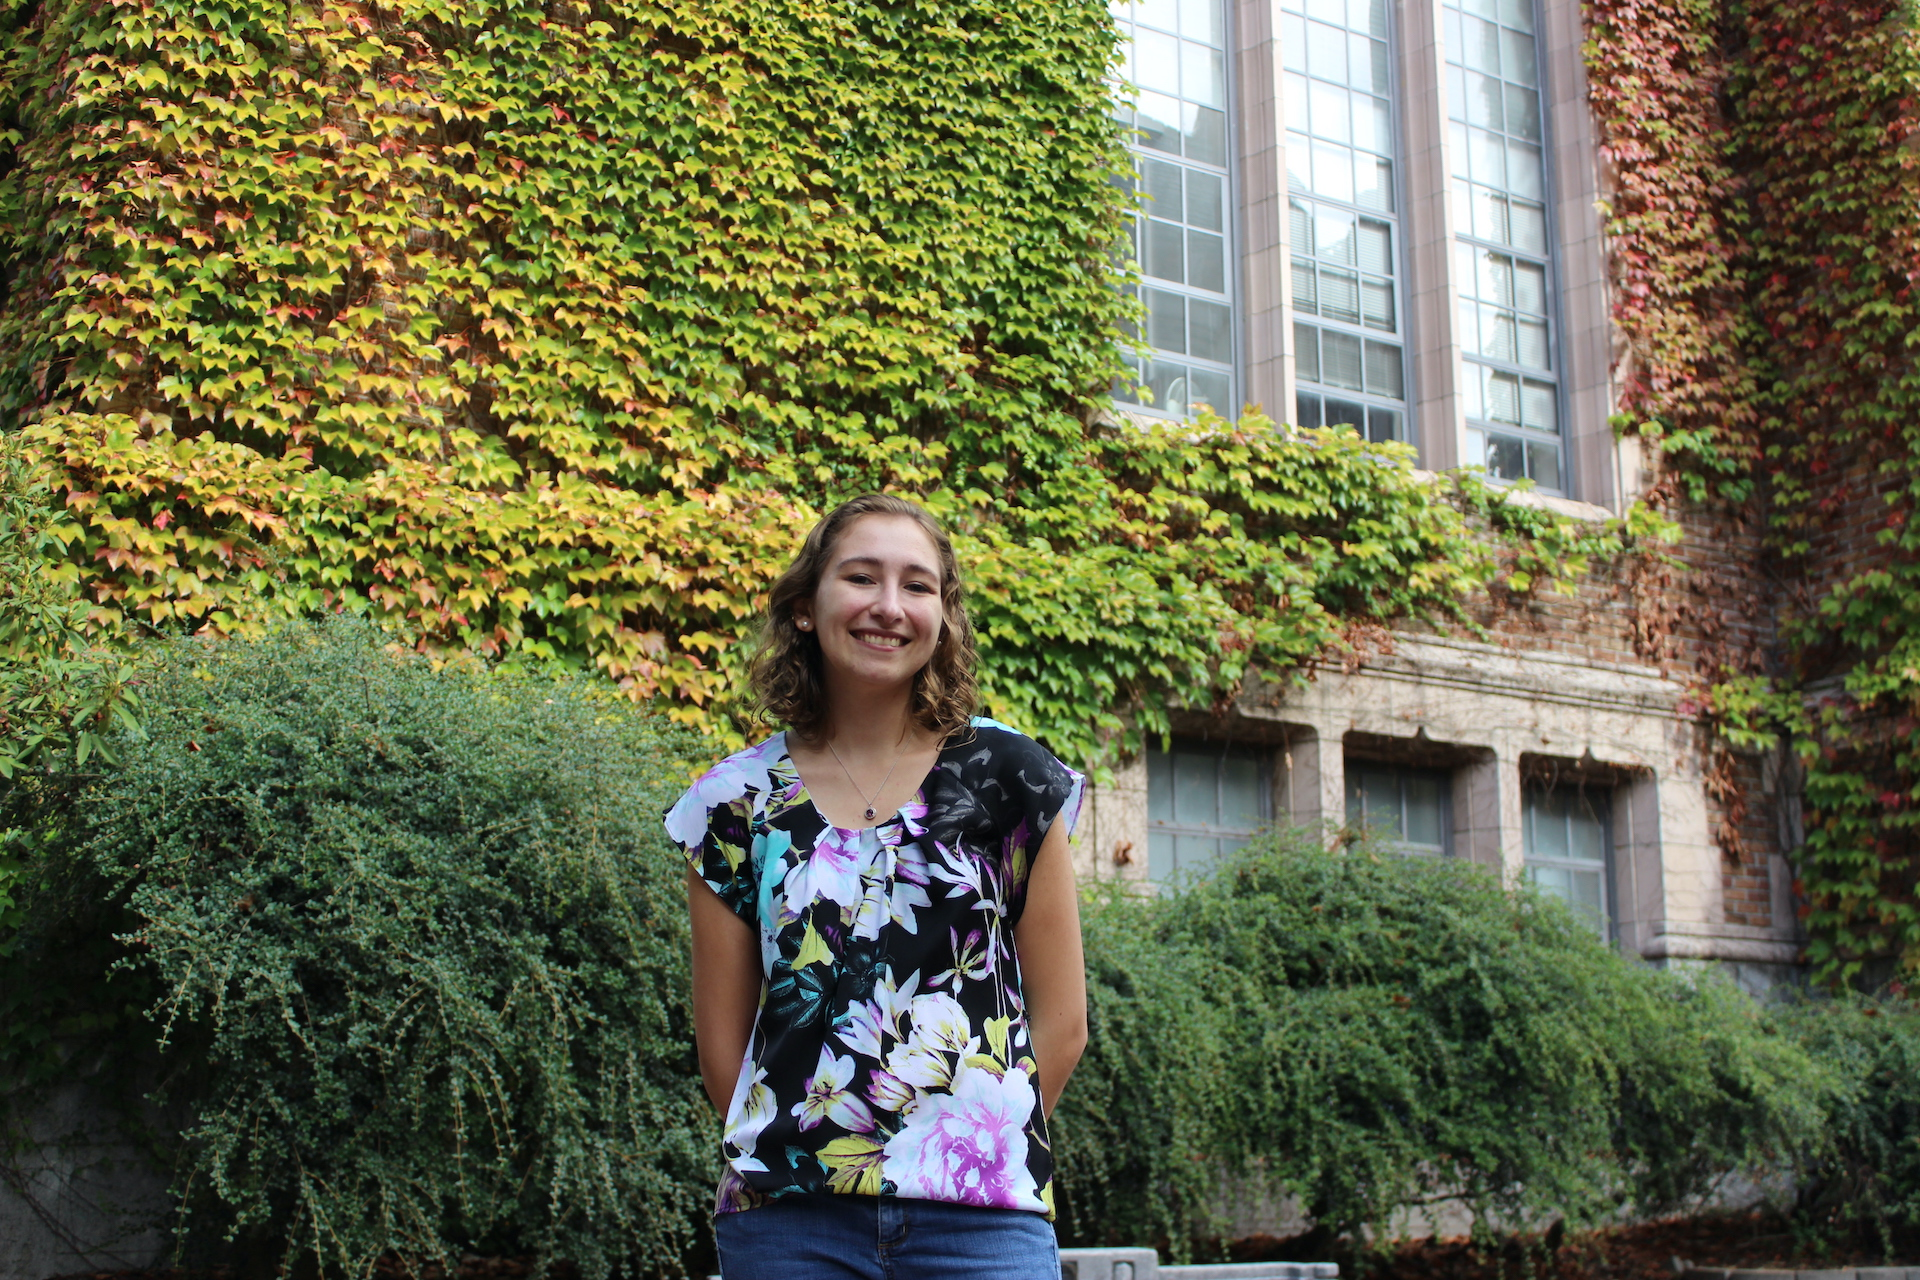 Kelly, a woman in her 20s, smiles as she stands in front of a brick building covered in green and yellow ivy.